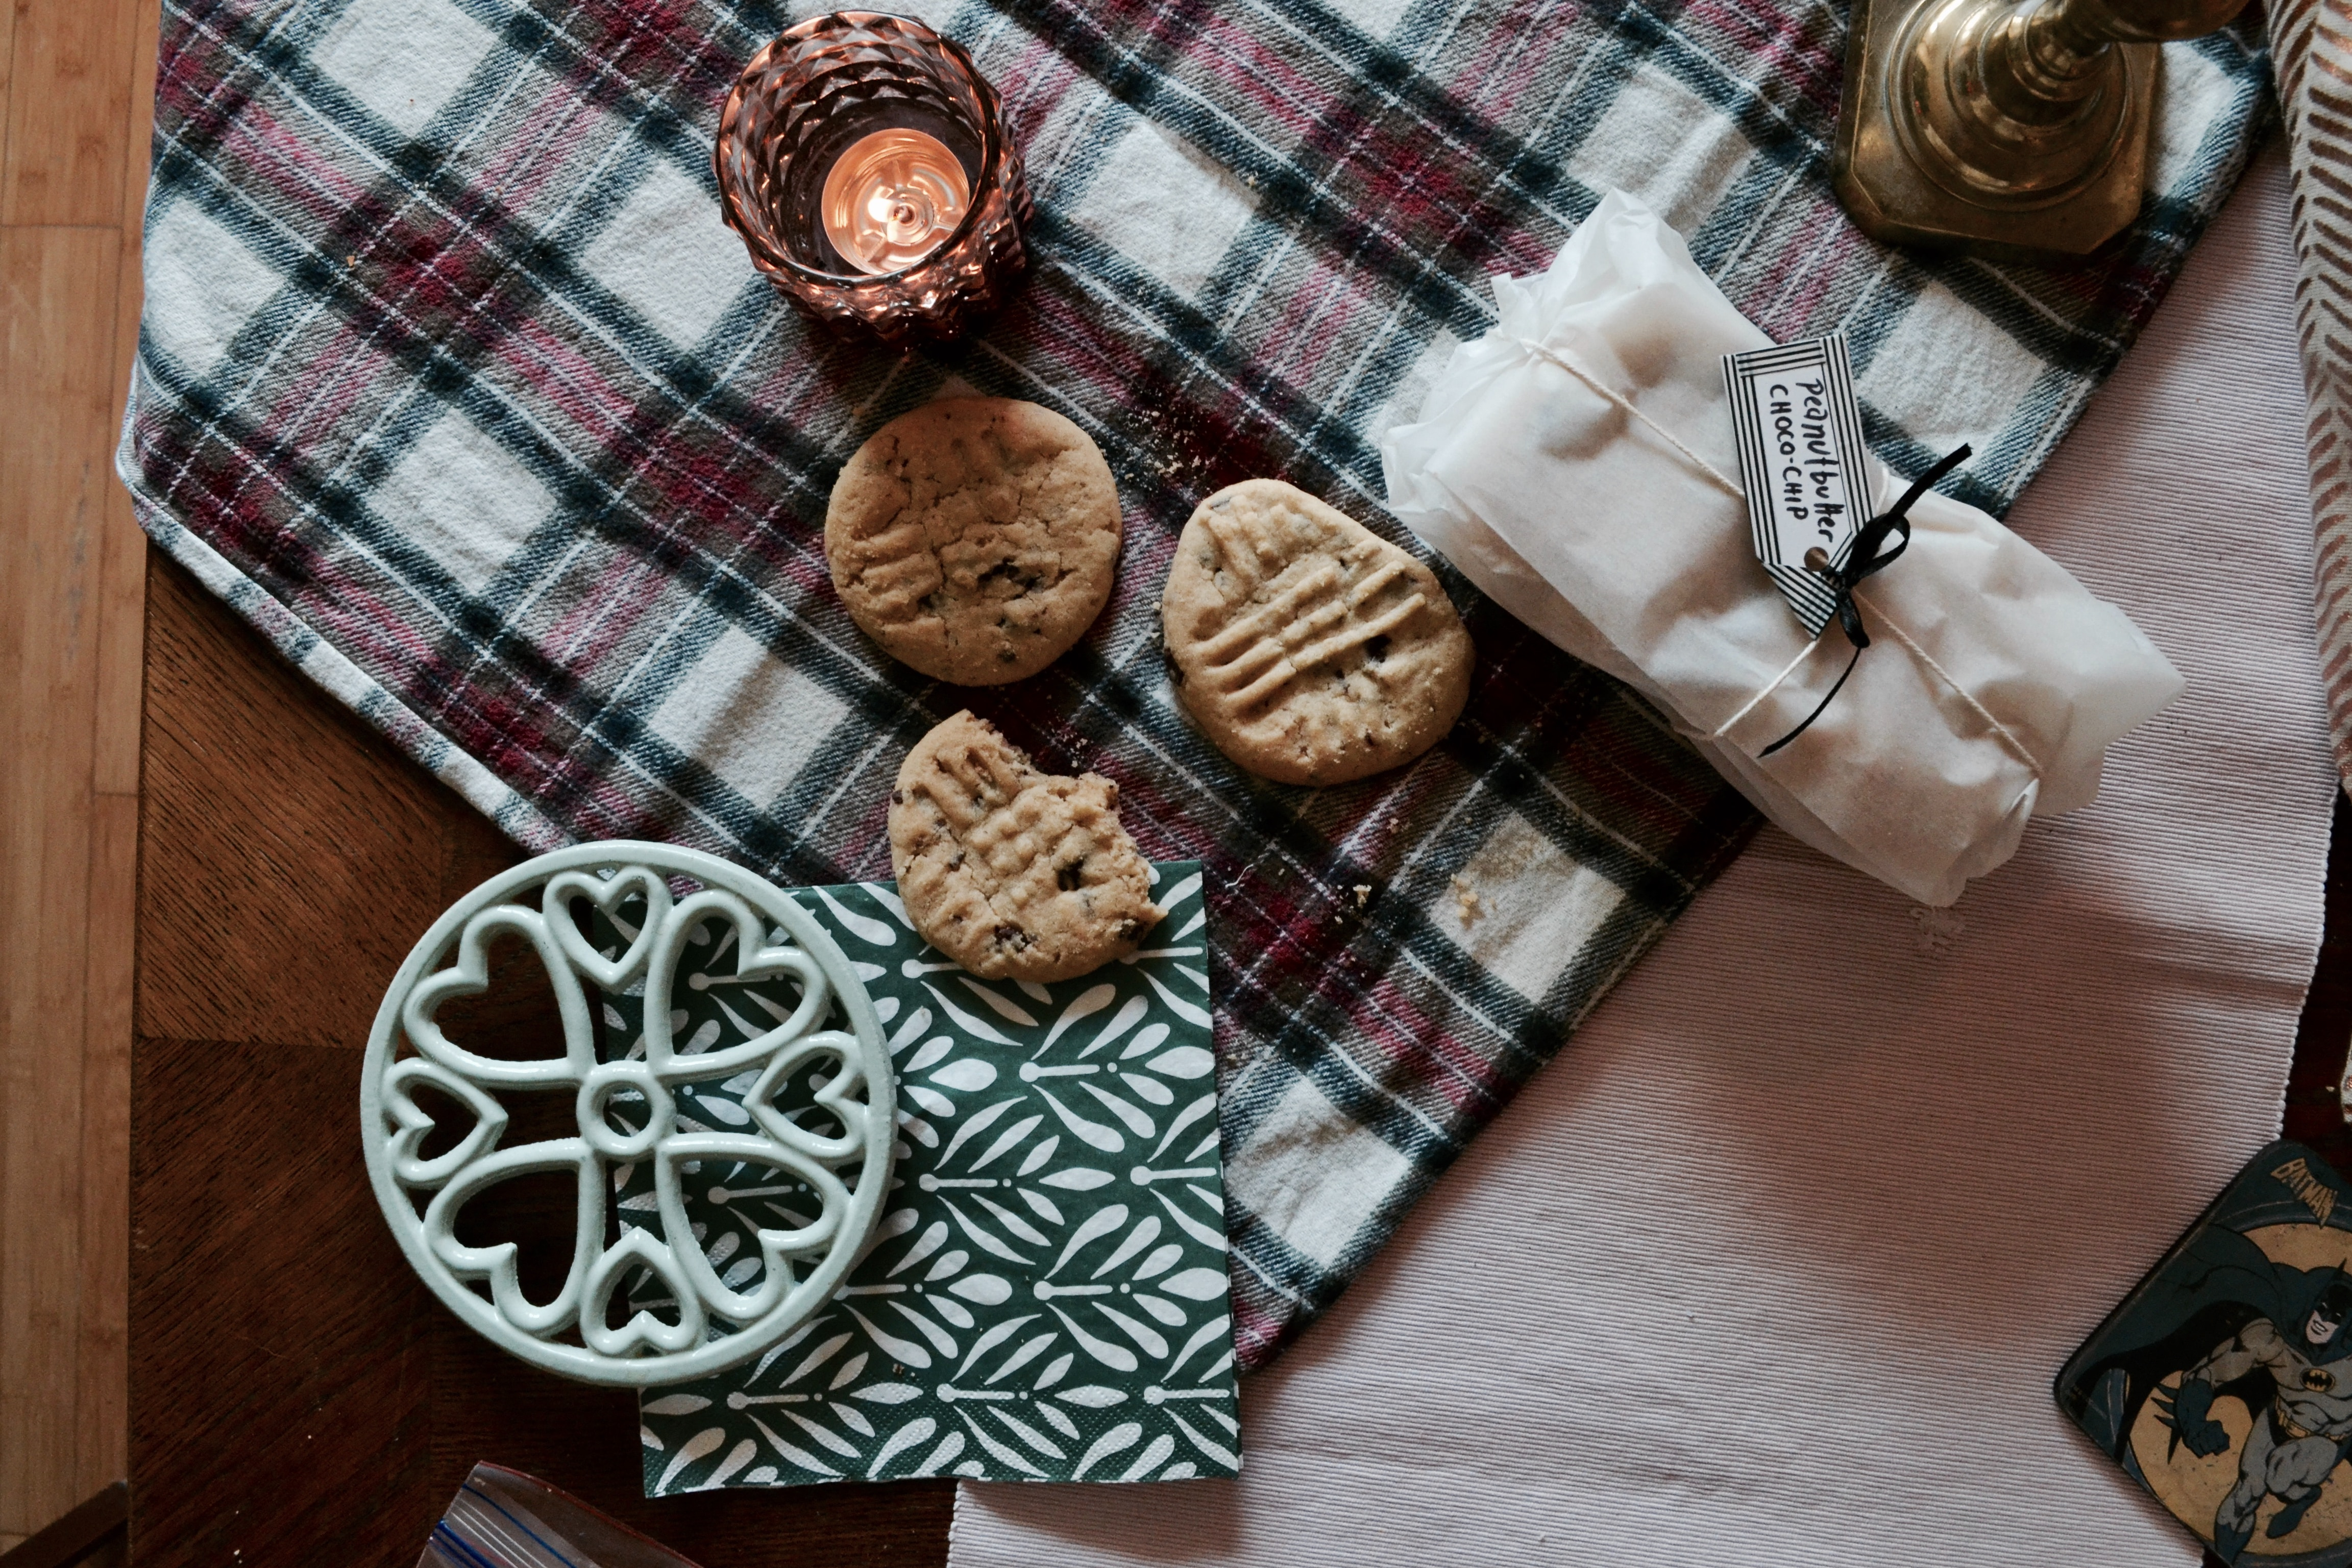 Flannel, Cookies, & Candles